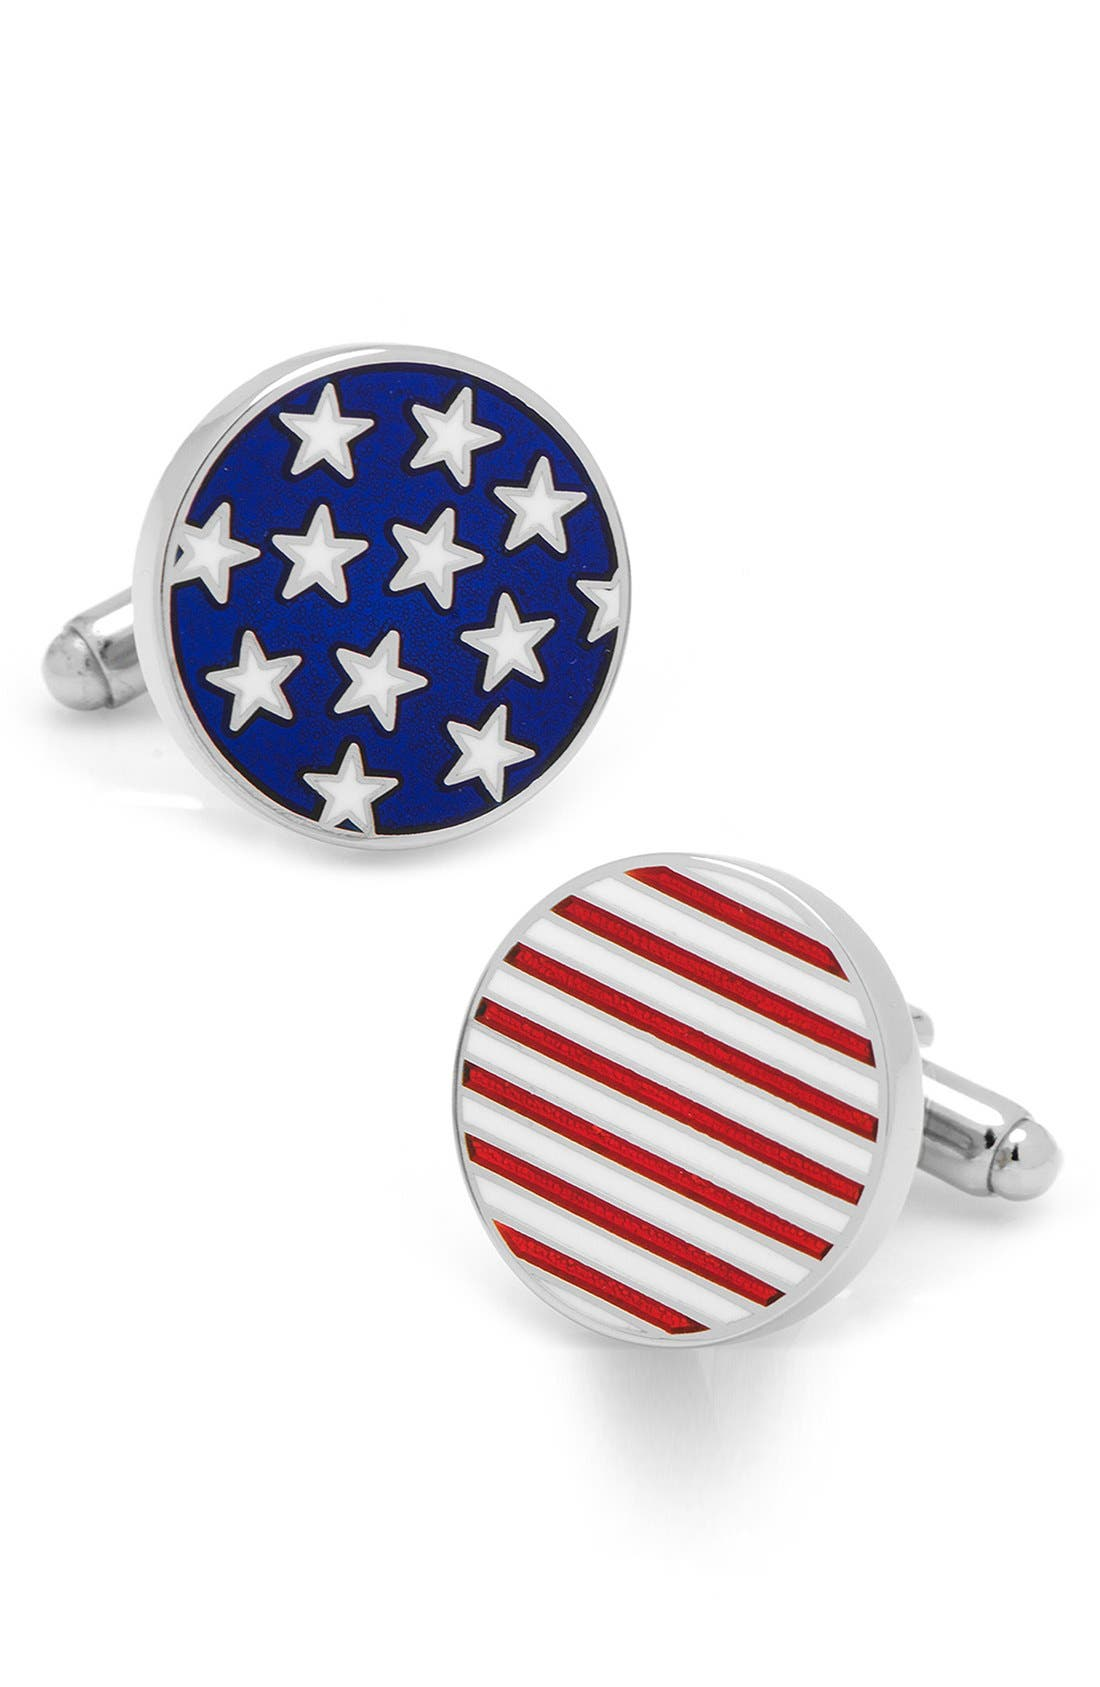 CUFFLINKS, INC. 'Stars & Stripes' Cuff Links